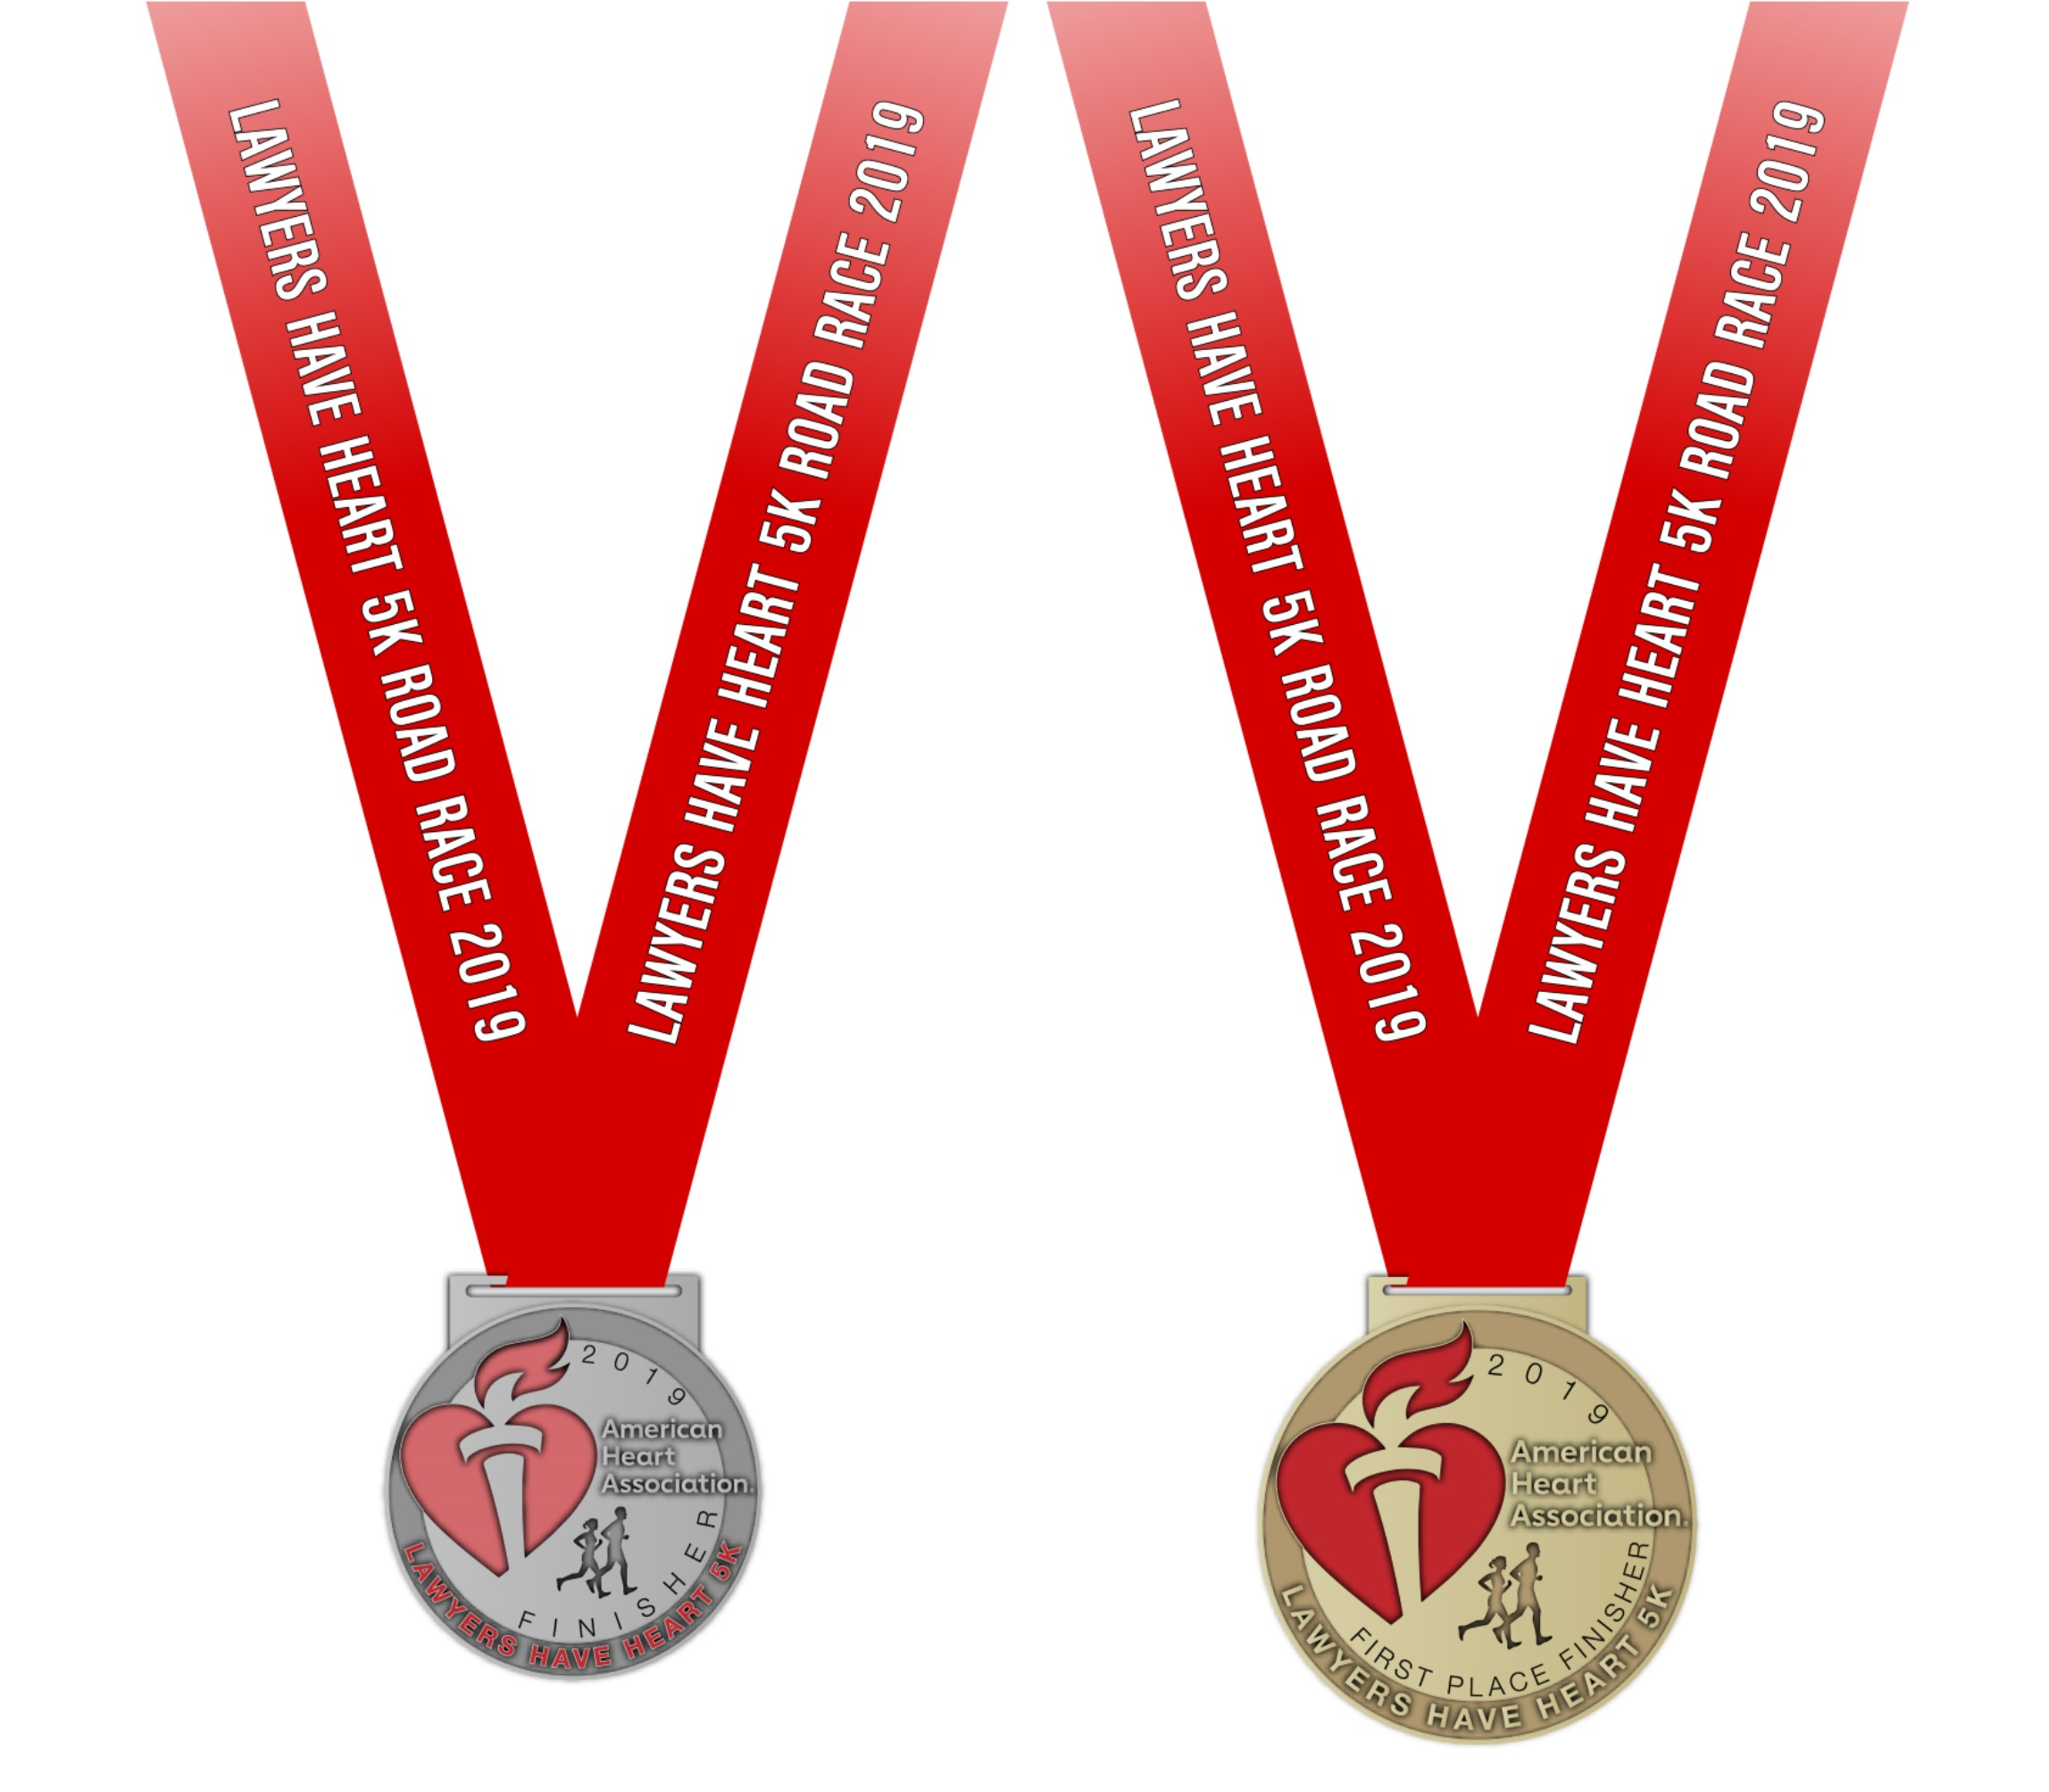 2019 LHH Boston Medals.jpg